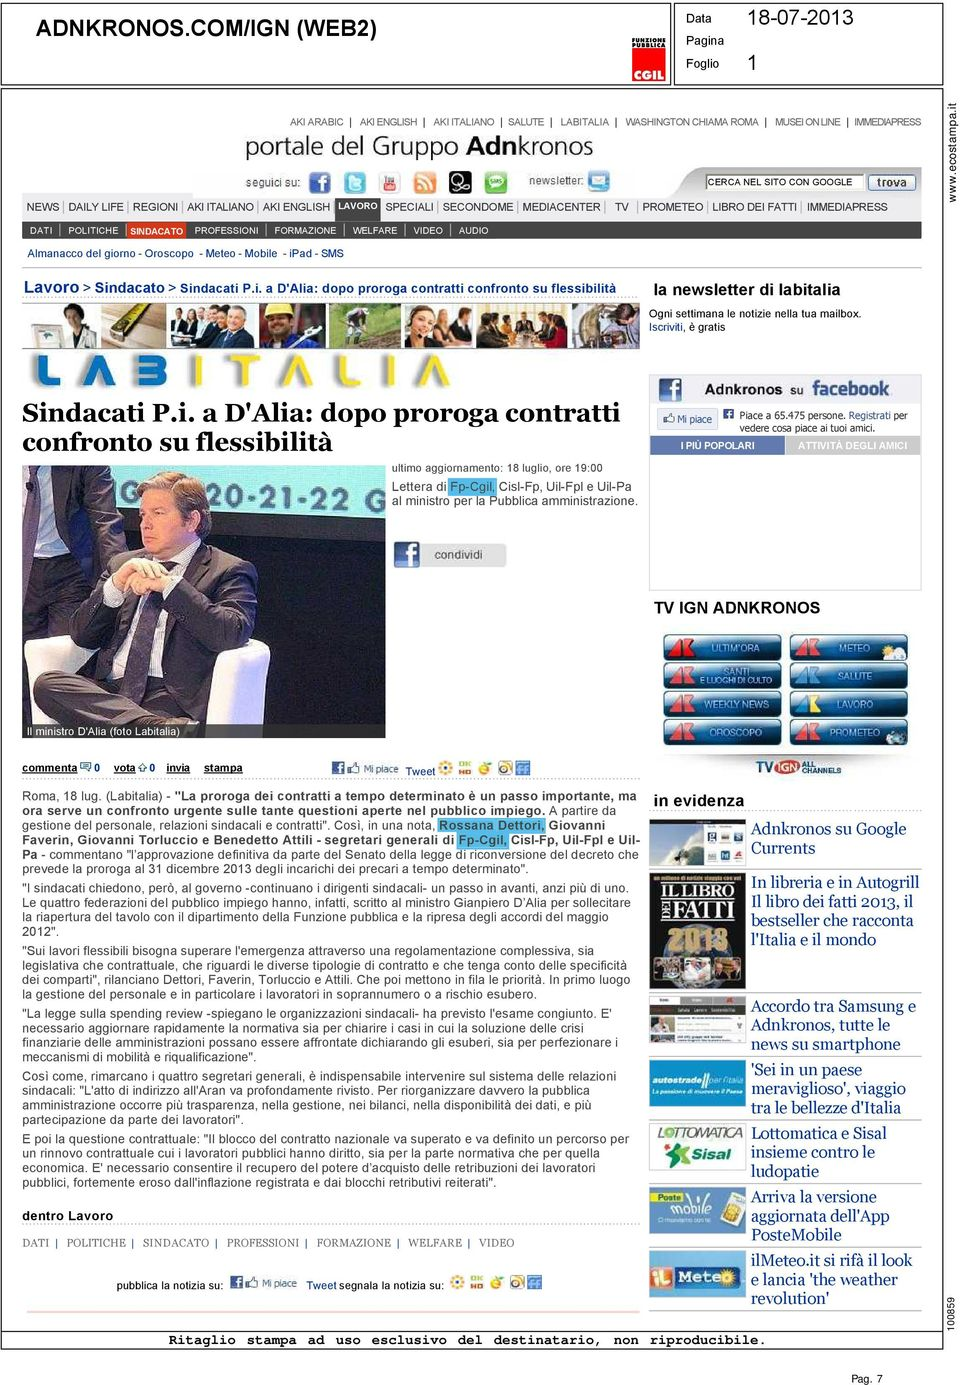 AKI ITALIANO AKI ENGLISH LAVORO SPECIALI SECONDOME MEDIACENTER TV PROMETEO LIBRO DEI FATTI IMMEDIAPRESS DATI POLITICHE SINDACATO PROFESSIONI FORMAZIONE WELFARE VIDEO AUDIO Almanacco del giorno